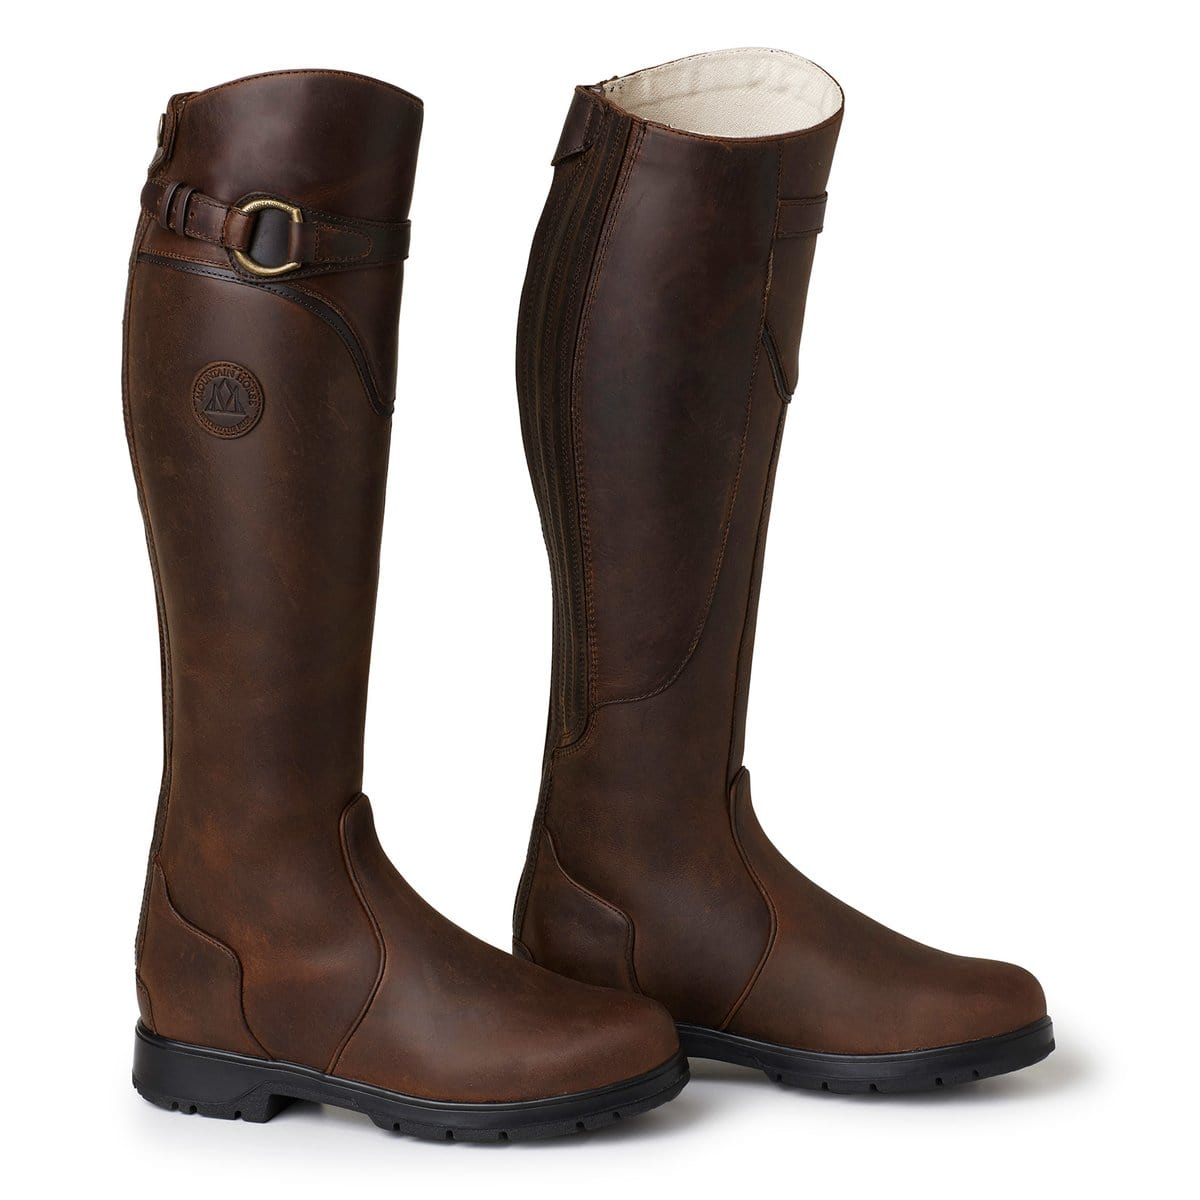 Mountain Horse Spring River Boots Brown 02097